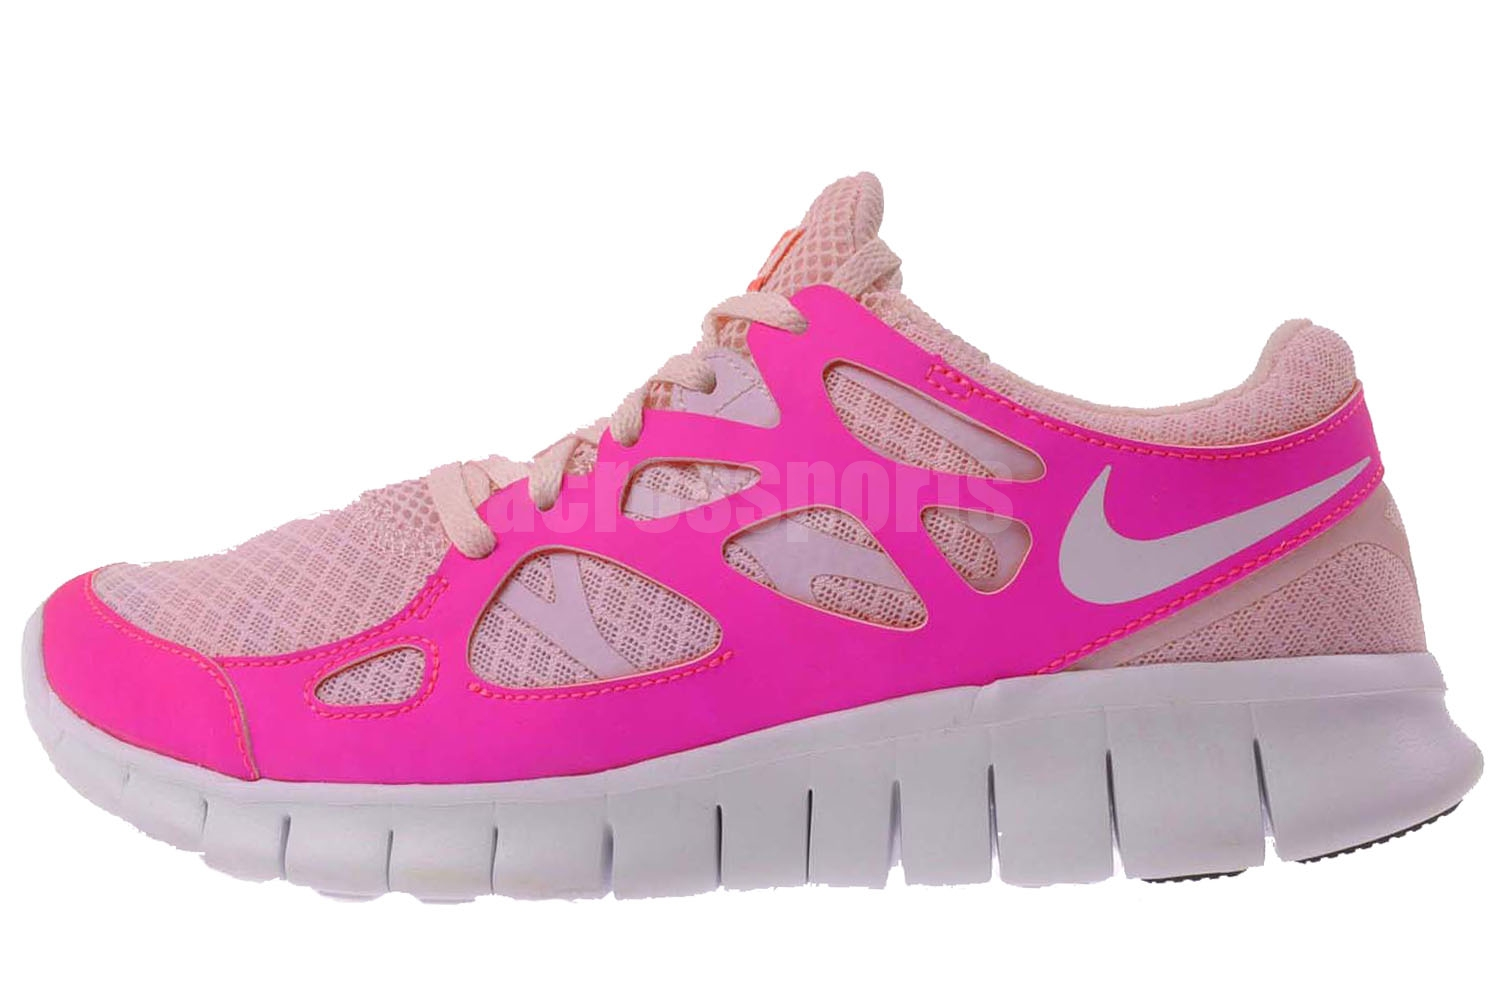 nike wmns free run plus 2 womens running shoes pink 443816. Black Bedroom Furniture Sets. Home Design Ideas